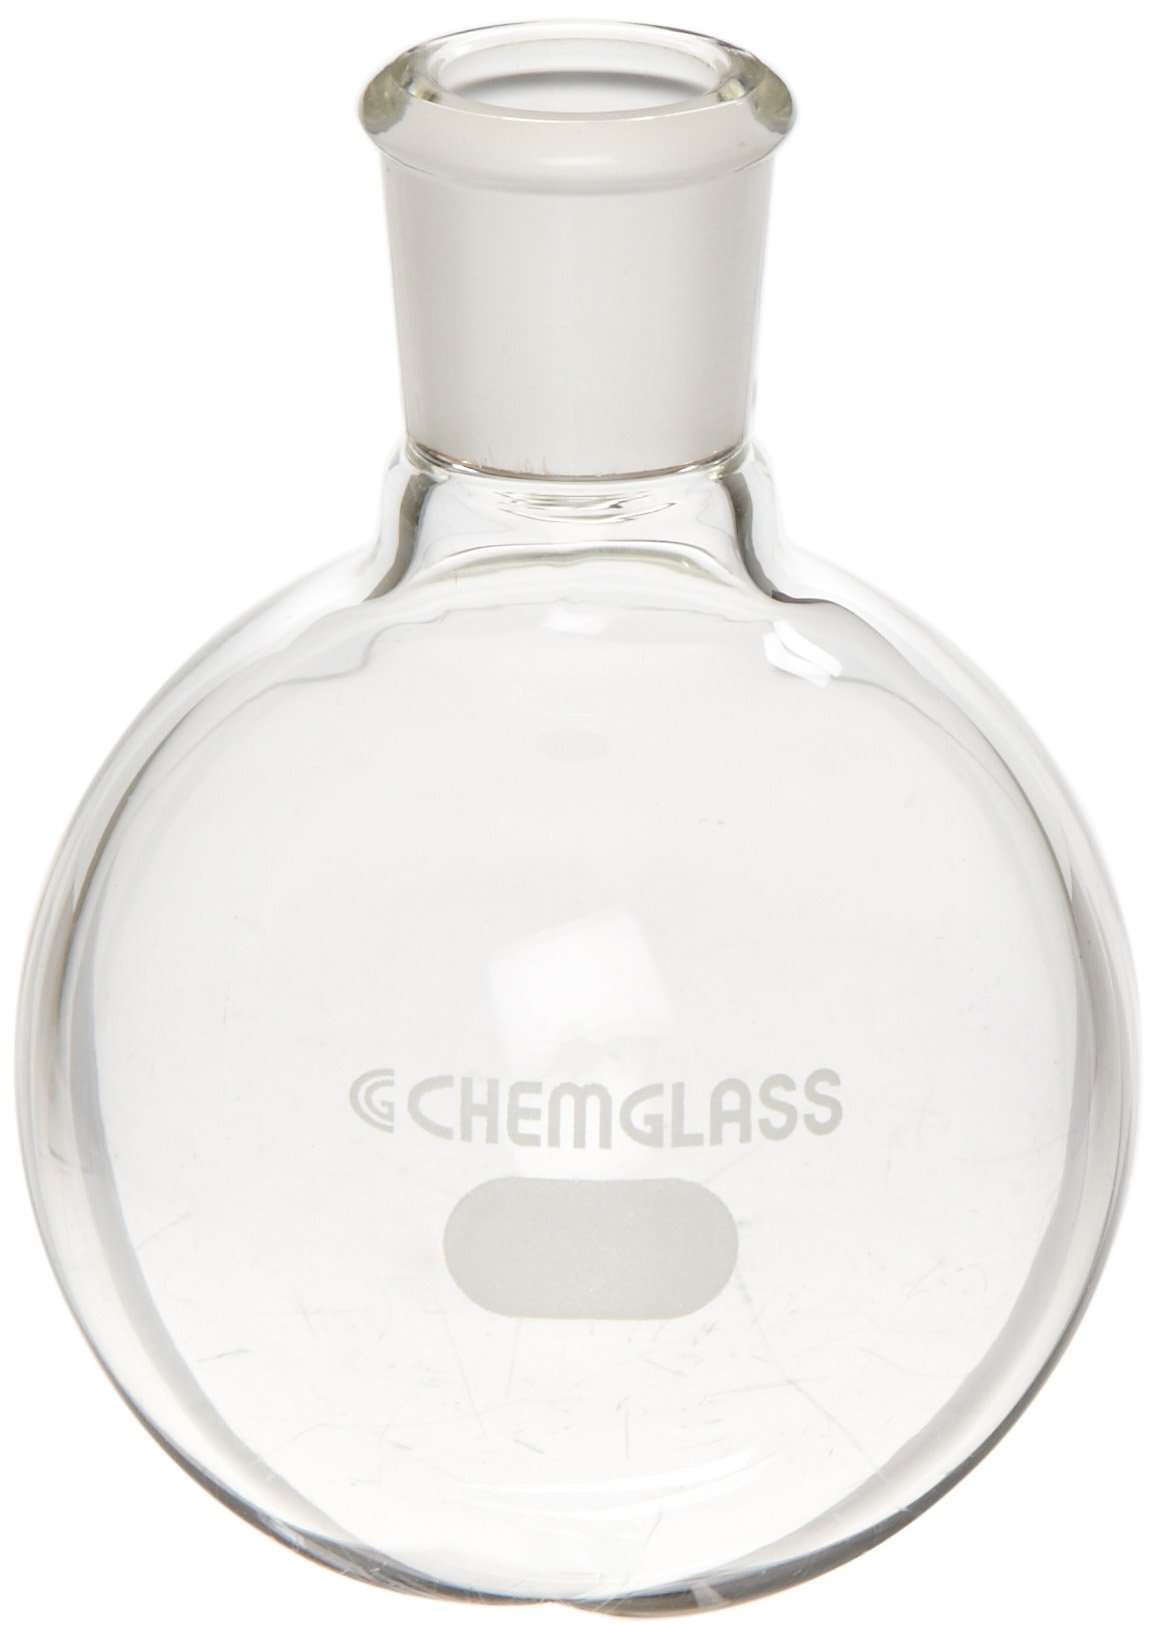 Chemglass CG-1506-90 Glass 100mL Heavy Wall Single Neck Round Bottom Flask, with 14/20 Standard Taper Outer Joint